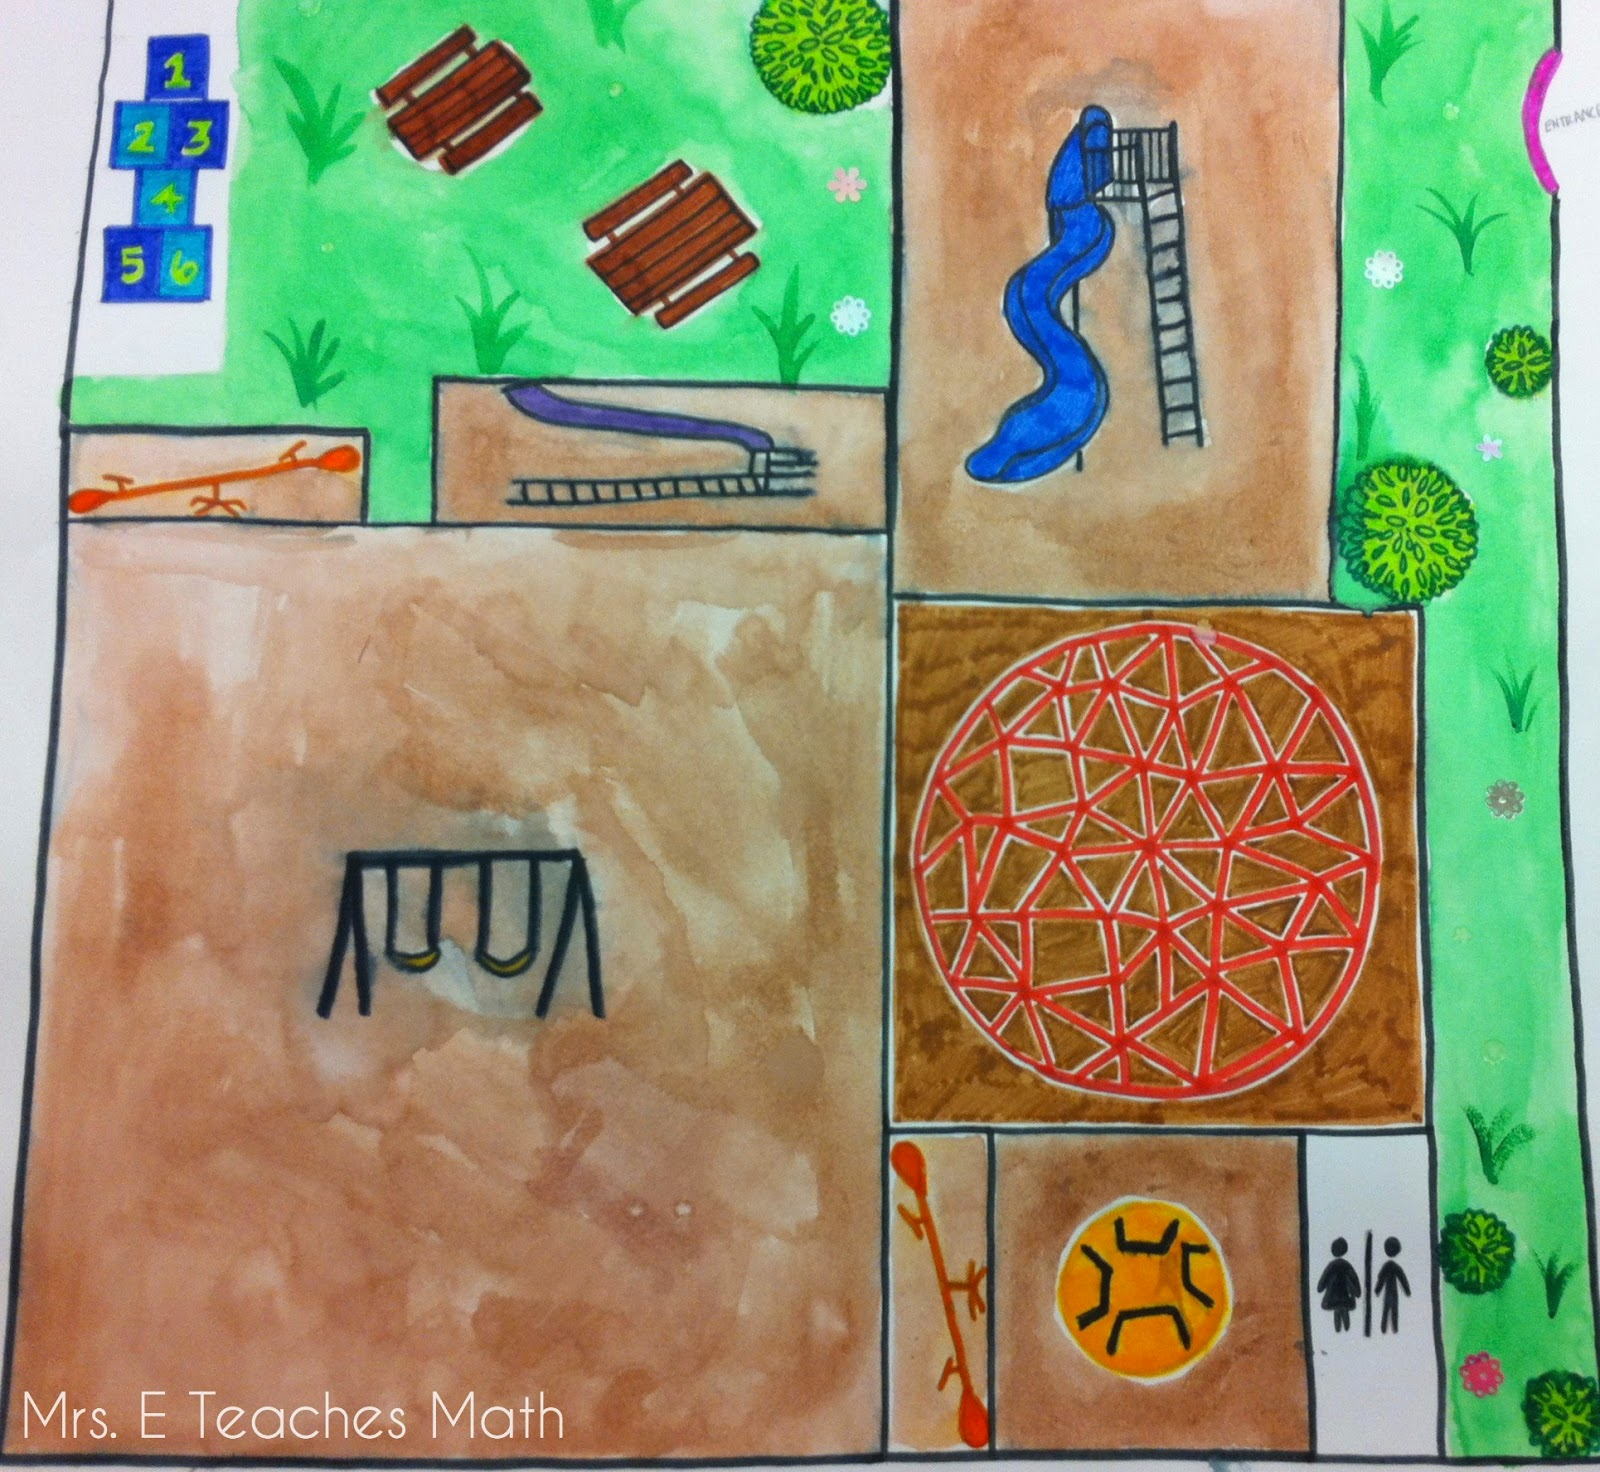 Playground Project - using perimeter and area in geometry  |  mrseteachesmath.blogspot.com